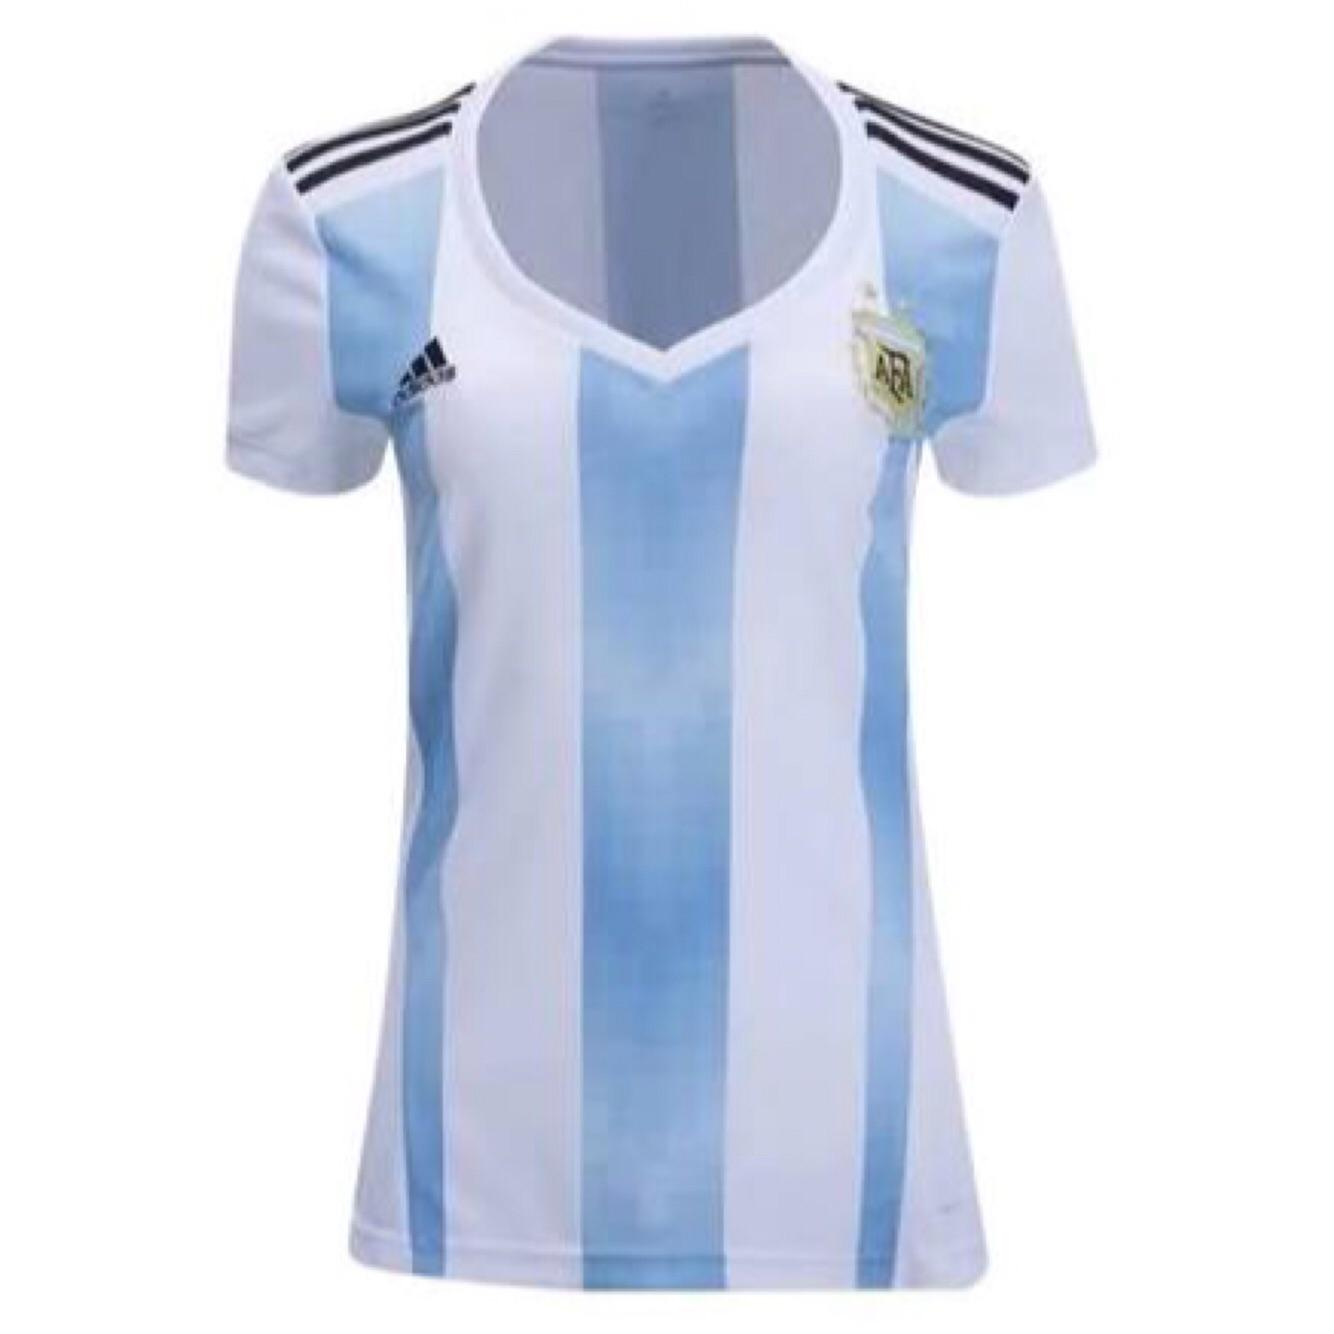 JERSEY LADIES ARGENTINA HOME WORLD CUP 2018 - JERSEY BOLA LADIES TIMNAS ARGENTINA PIALA DUNIA 2018